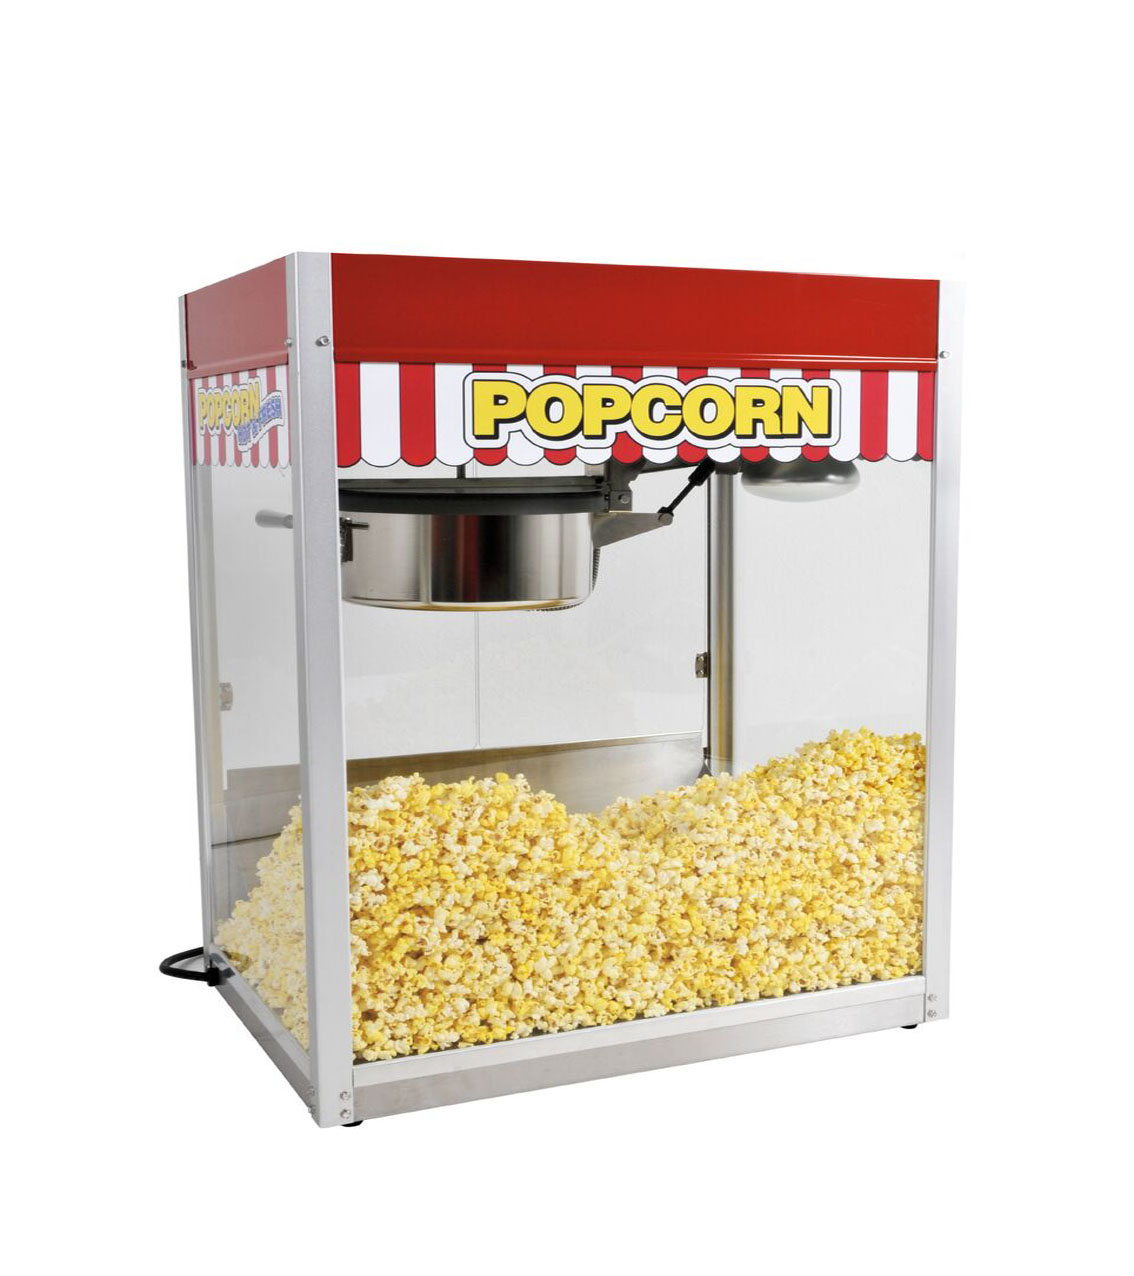 paragon popcorn machine manual